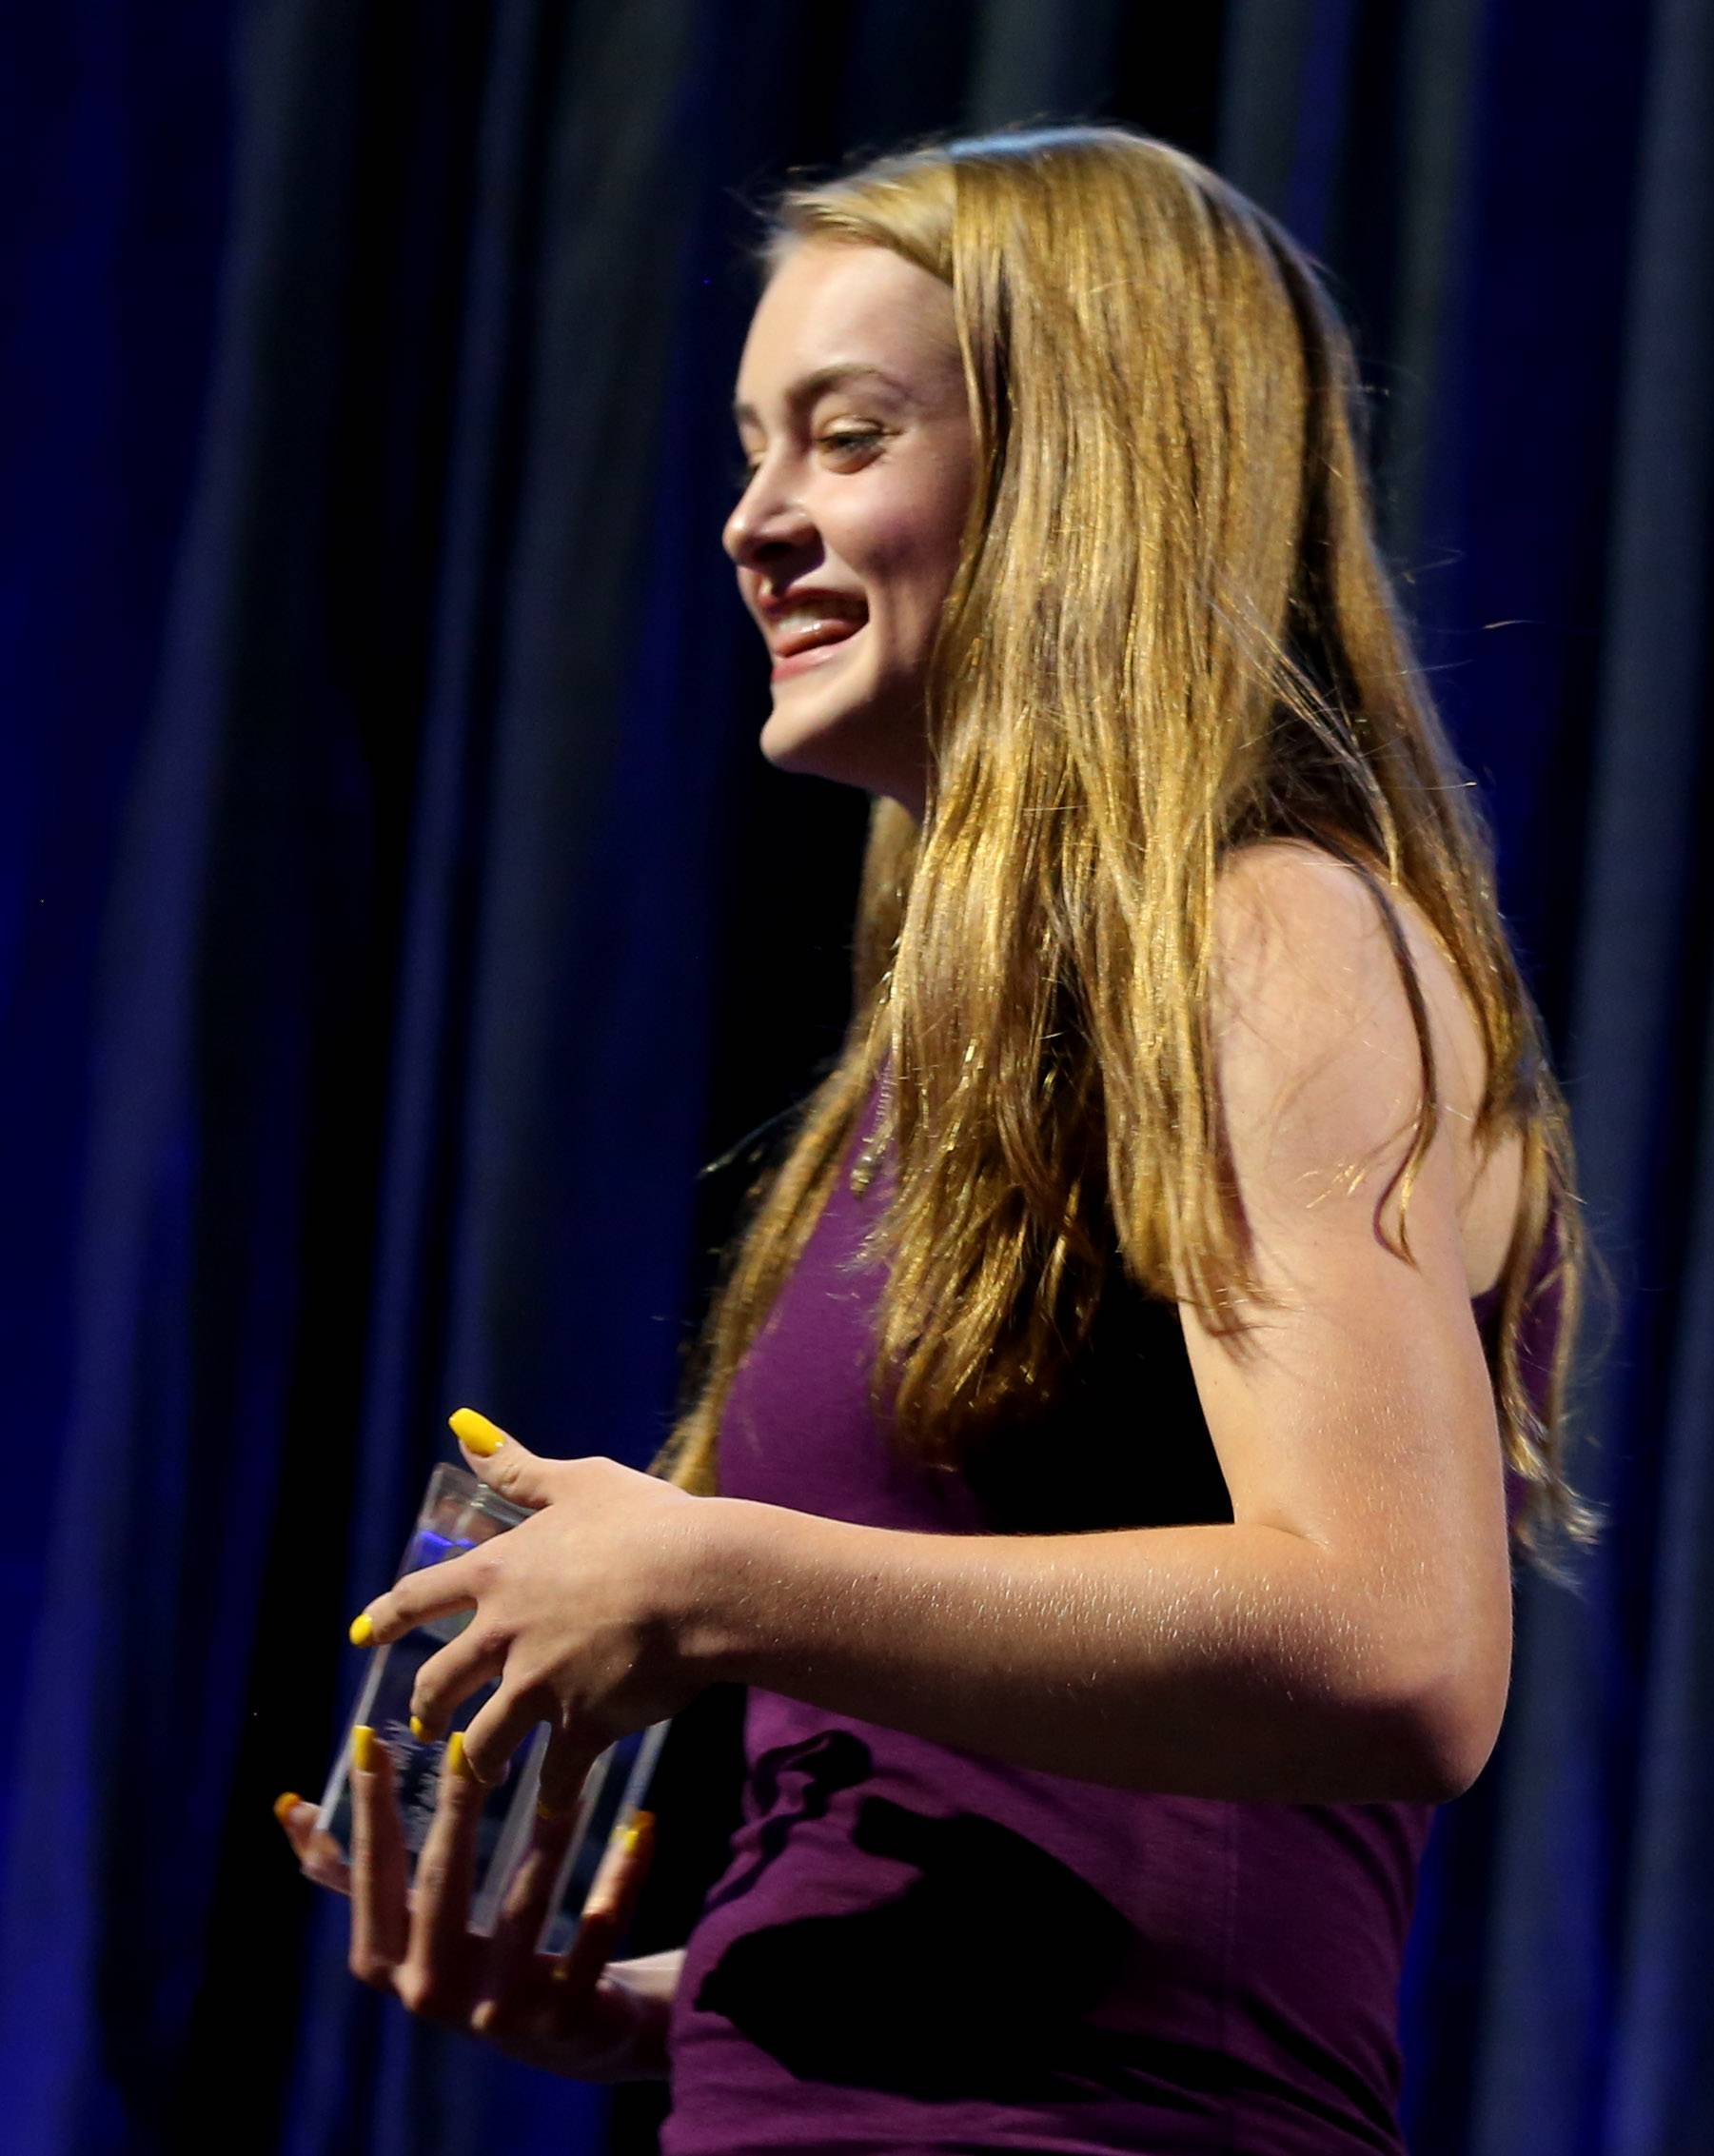 Kylie Graves of Elgin High School holds her Heart and Soul Award on stage Thursdya night as part of the Daily Herald Prep Sports Excellence Awards at the Sears Centre in Hoffman Estates.